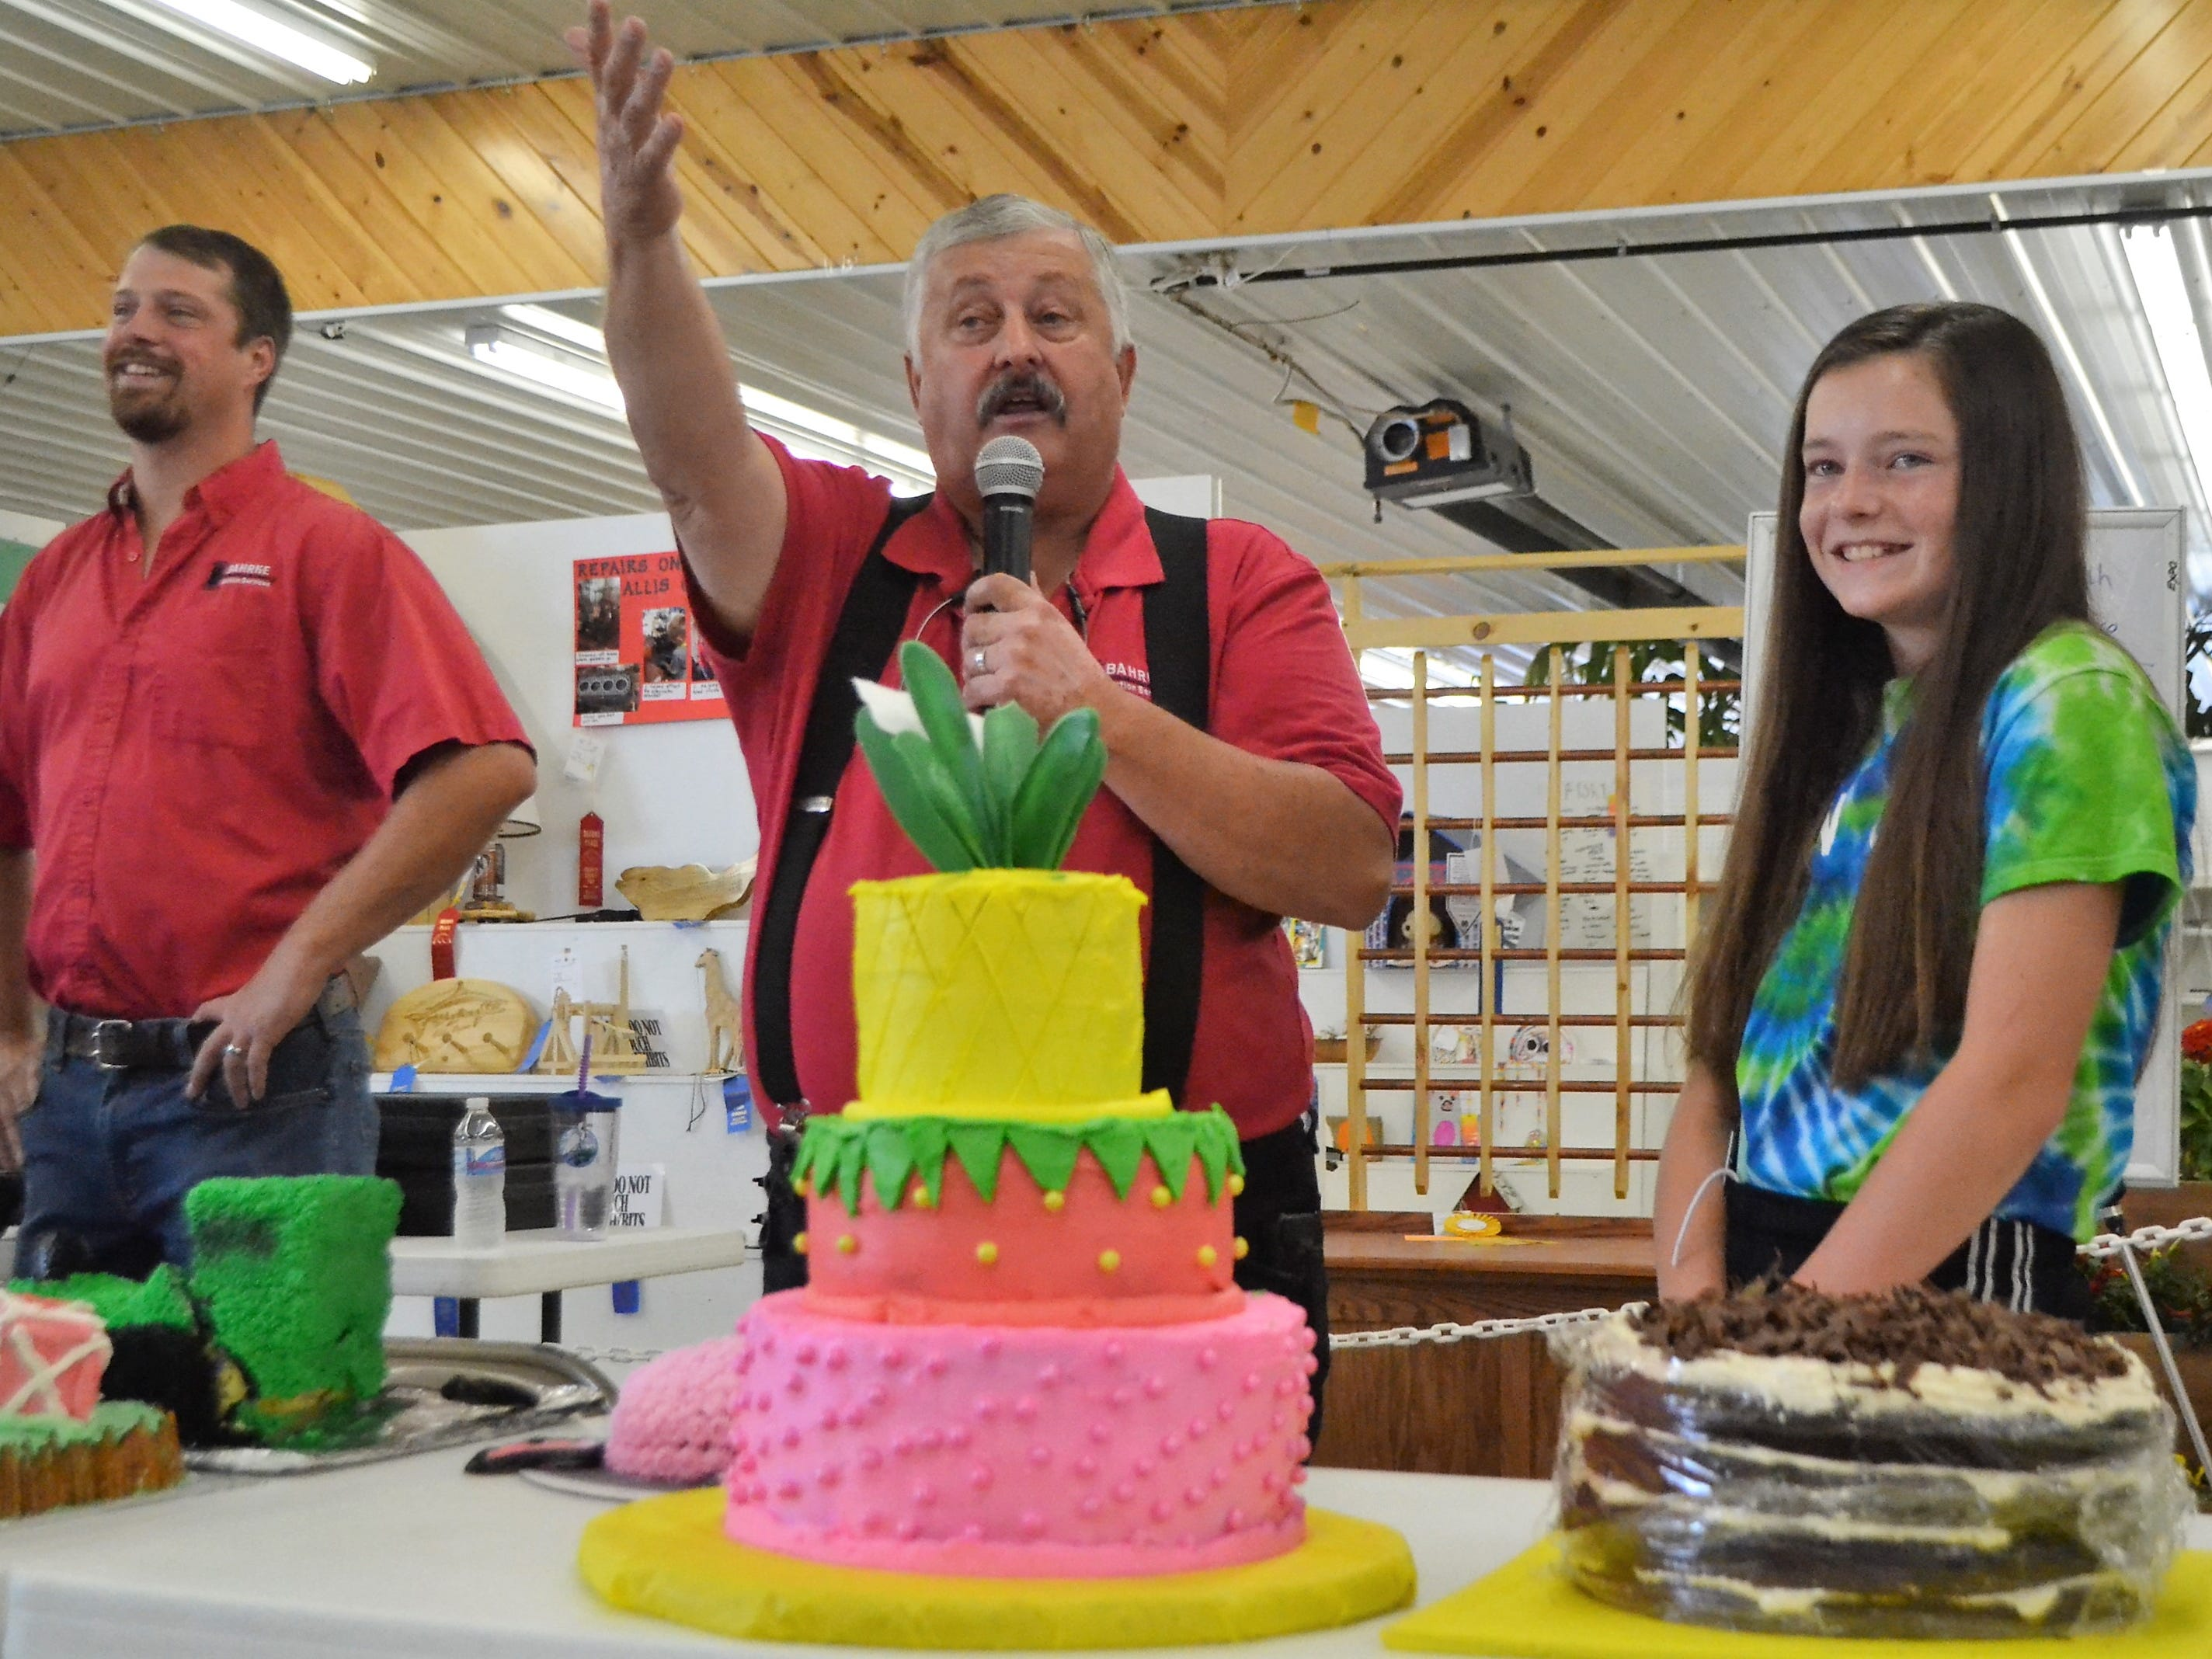 Katy Raddatz, 12, of Oconto Falls, a member of Christy Brook 4-H Club, smiles as auctioneer Jeff Bahrke of Gillett tries to elicit a higher bid of her huge cake at the Decorated Cake Auction at the Oconto County Fair on Saturday, Aug. 18. The cake, at center front, with layers of lemon, strawberry and vanilla (with raspberry filling!) weighed 27 pounds. It sold for $575, which Katy said would go into her college fund. At left is Jeff's son, fellow auctioneer John Bahrke.